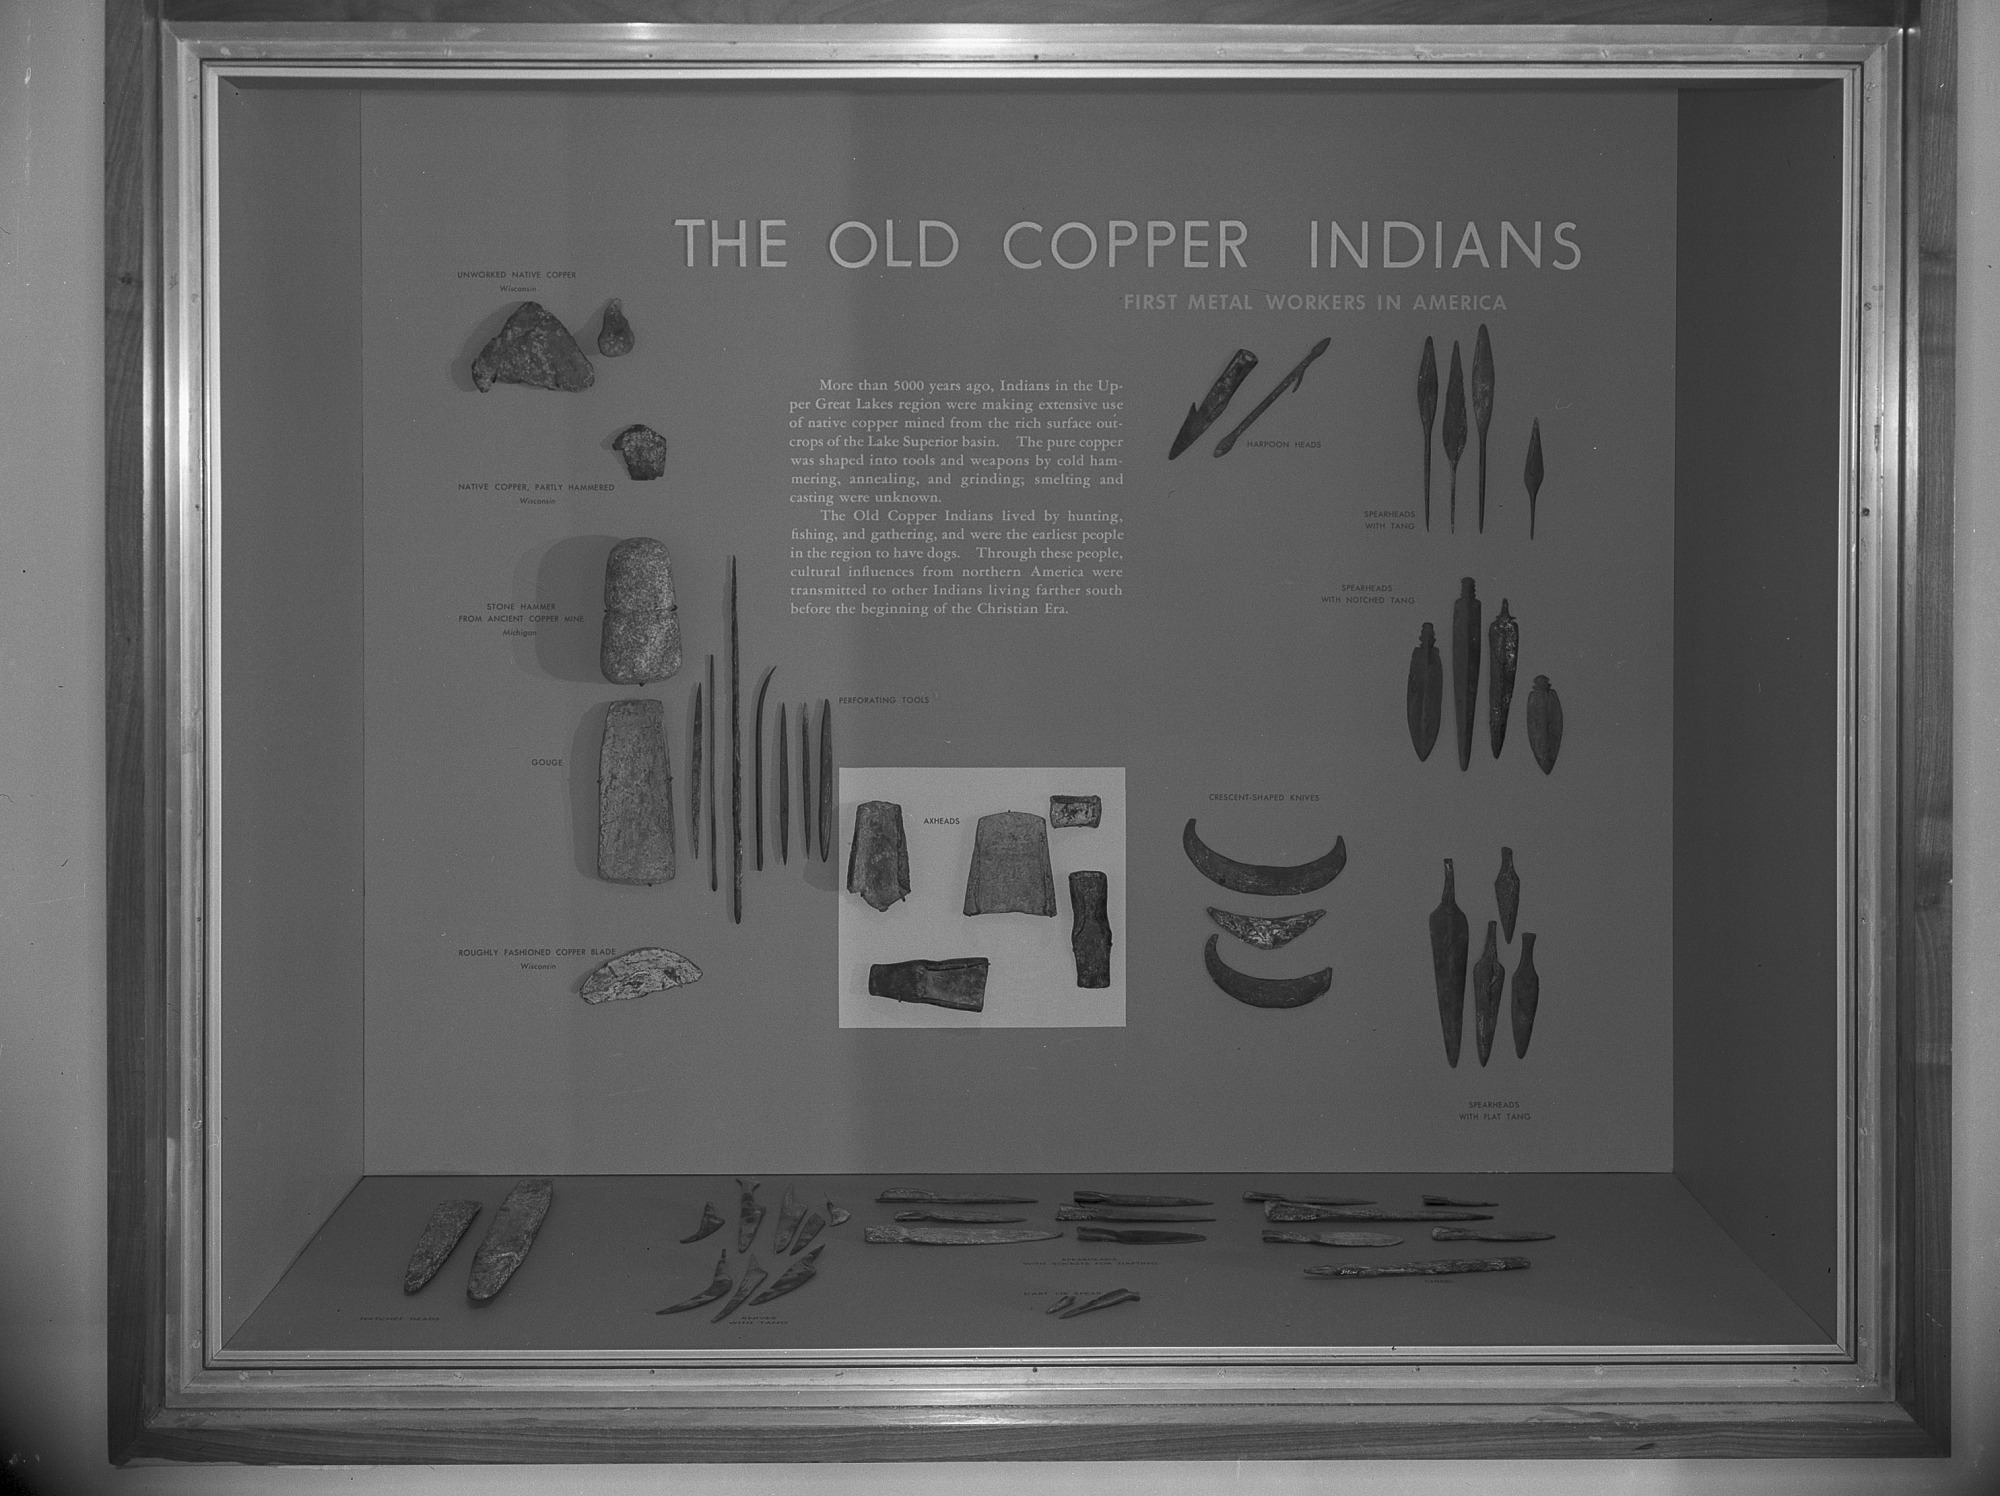 Photograph of exhibit of collection of materials from ancient cooper mining operations of the Lake Superior copper region, U.S. National Museum, 1962. Smithsonian Institution Archives, negative number mnh1007.